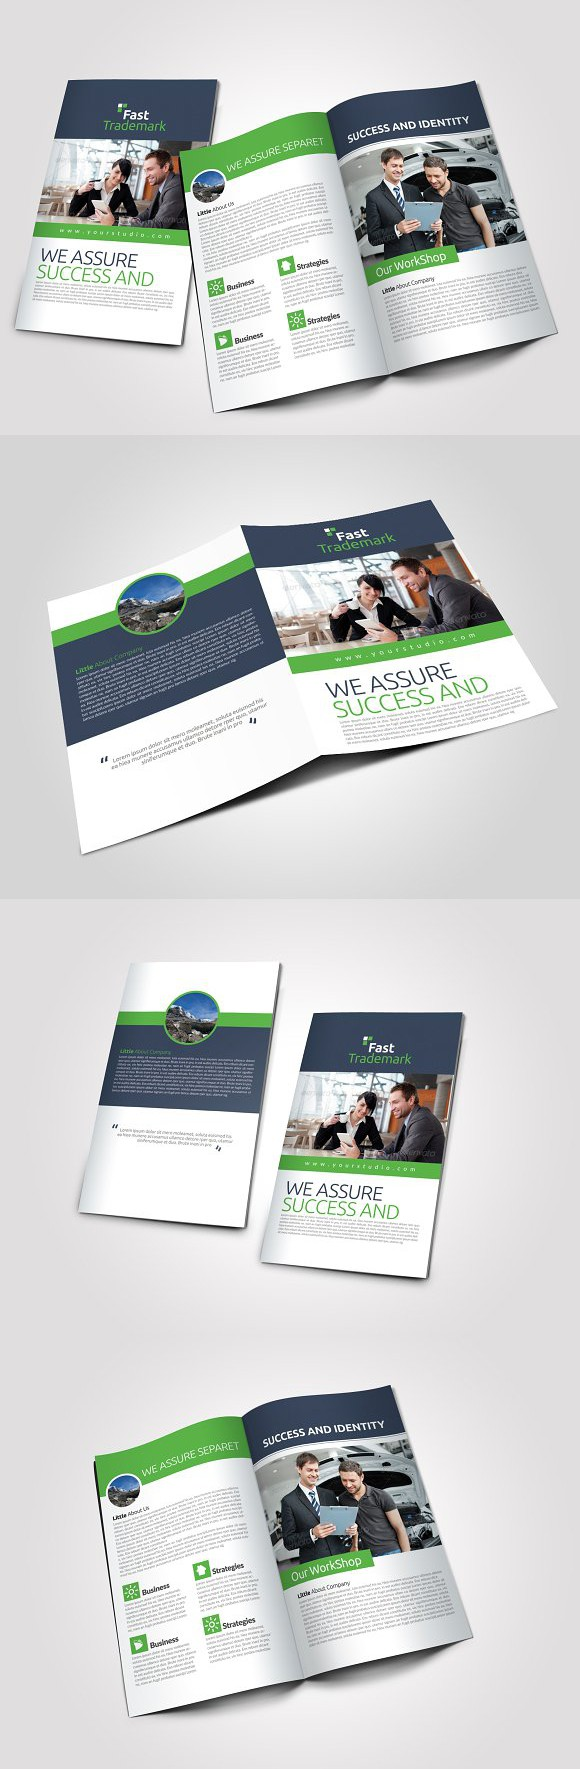 4 pages business bi fold brochure brochures card templates and 4 pages business bi fold brochure creative business card templates accmission Images